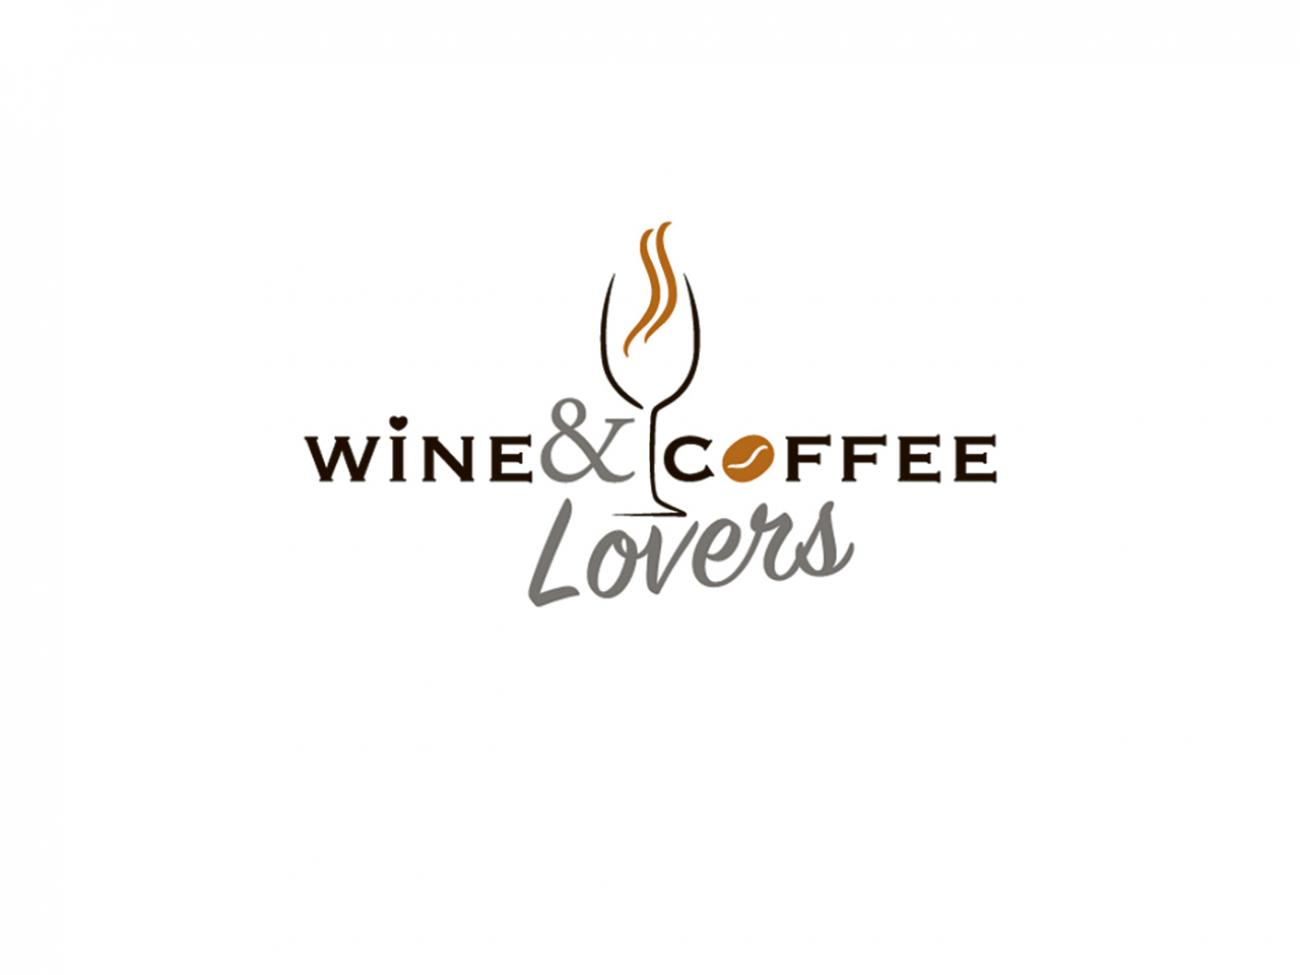 Winecoffee2 nov1920